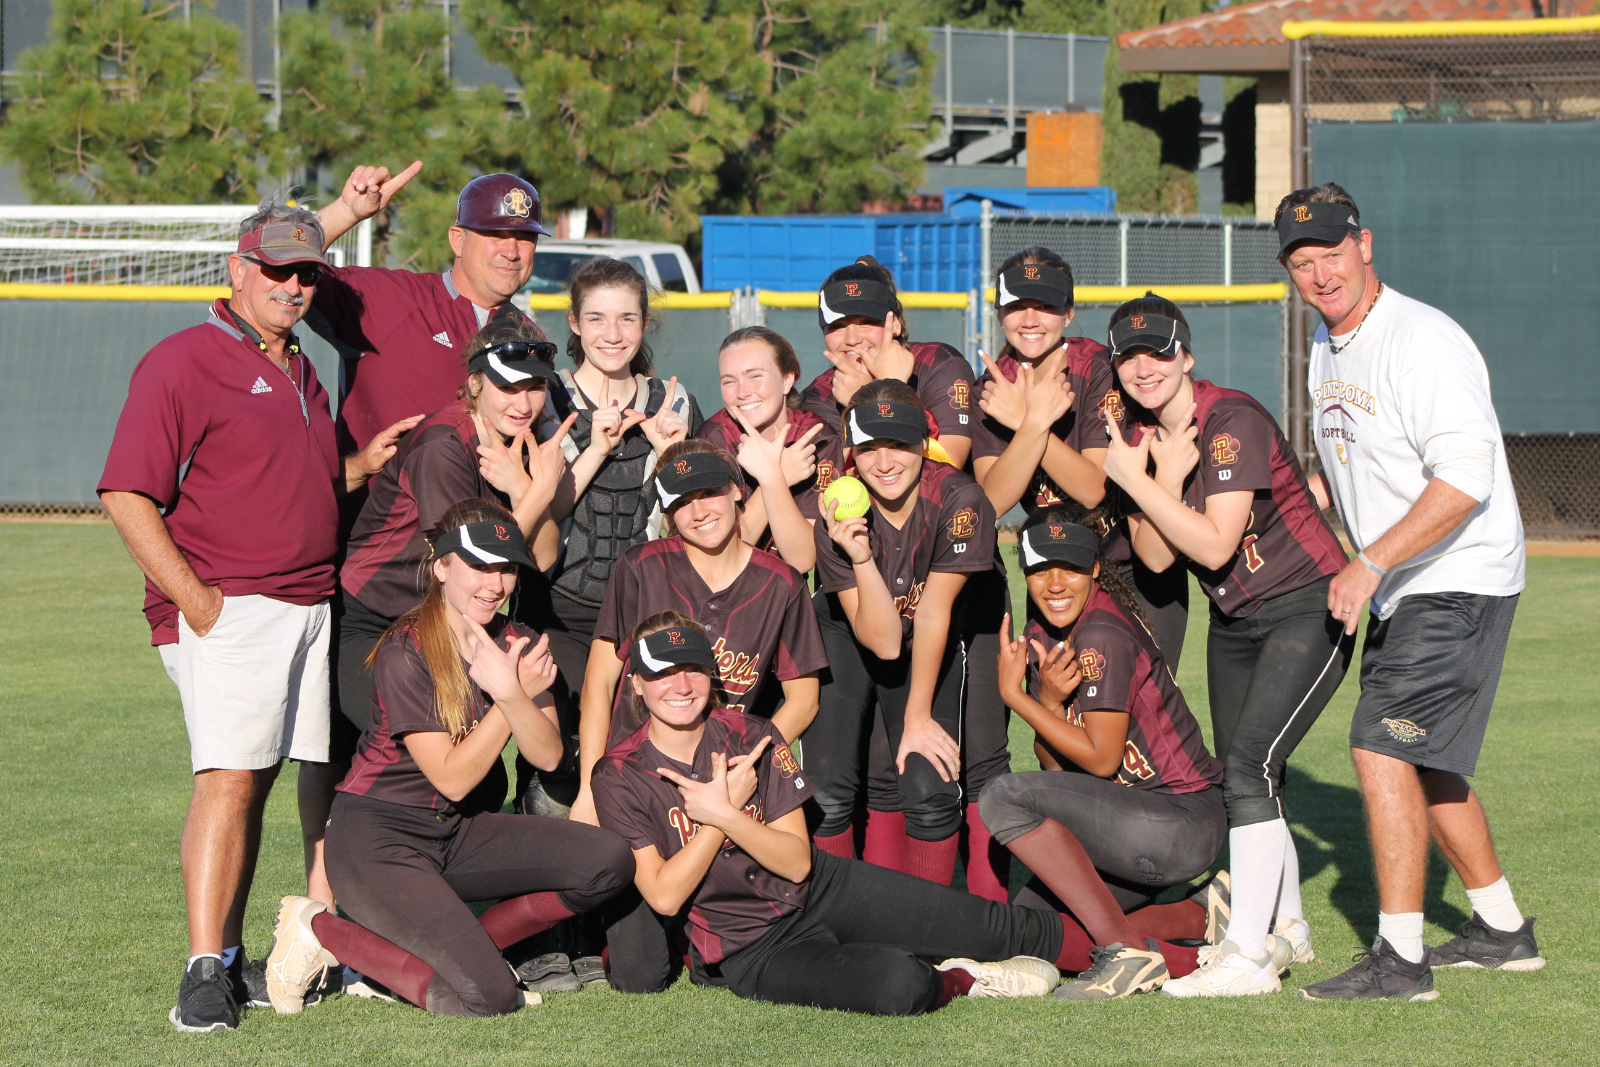 Exciting Weekend Softball WINS over Cathedral & Valhalla